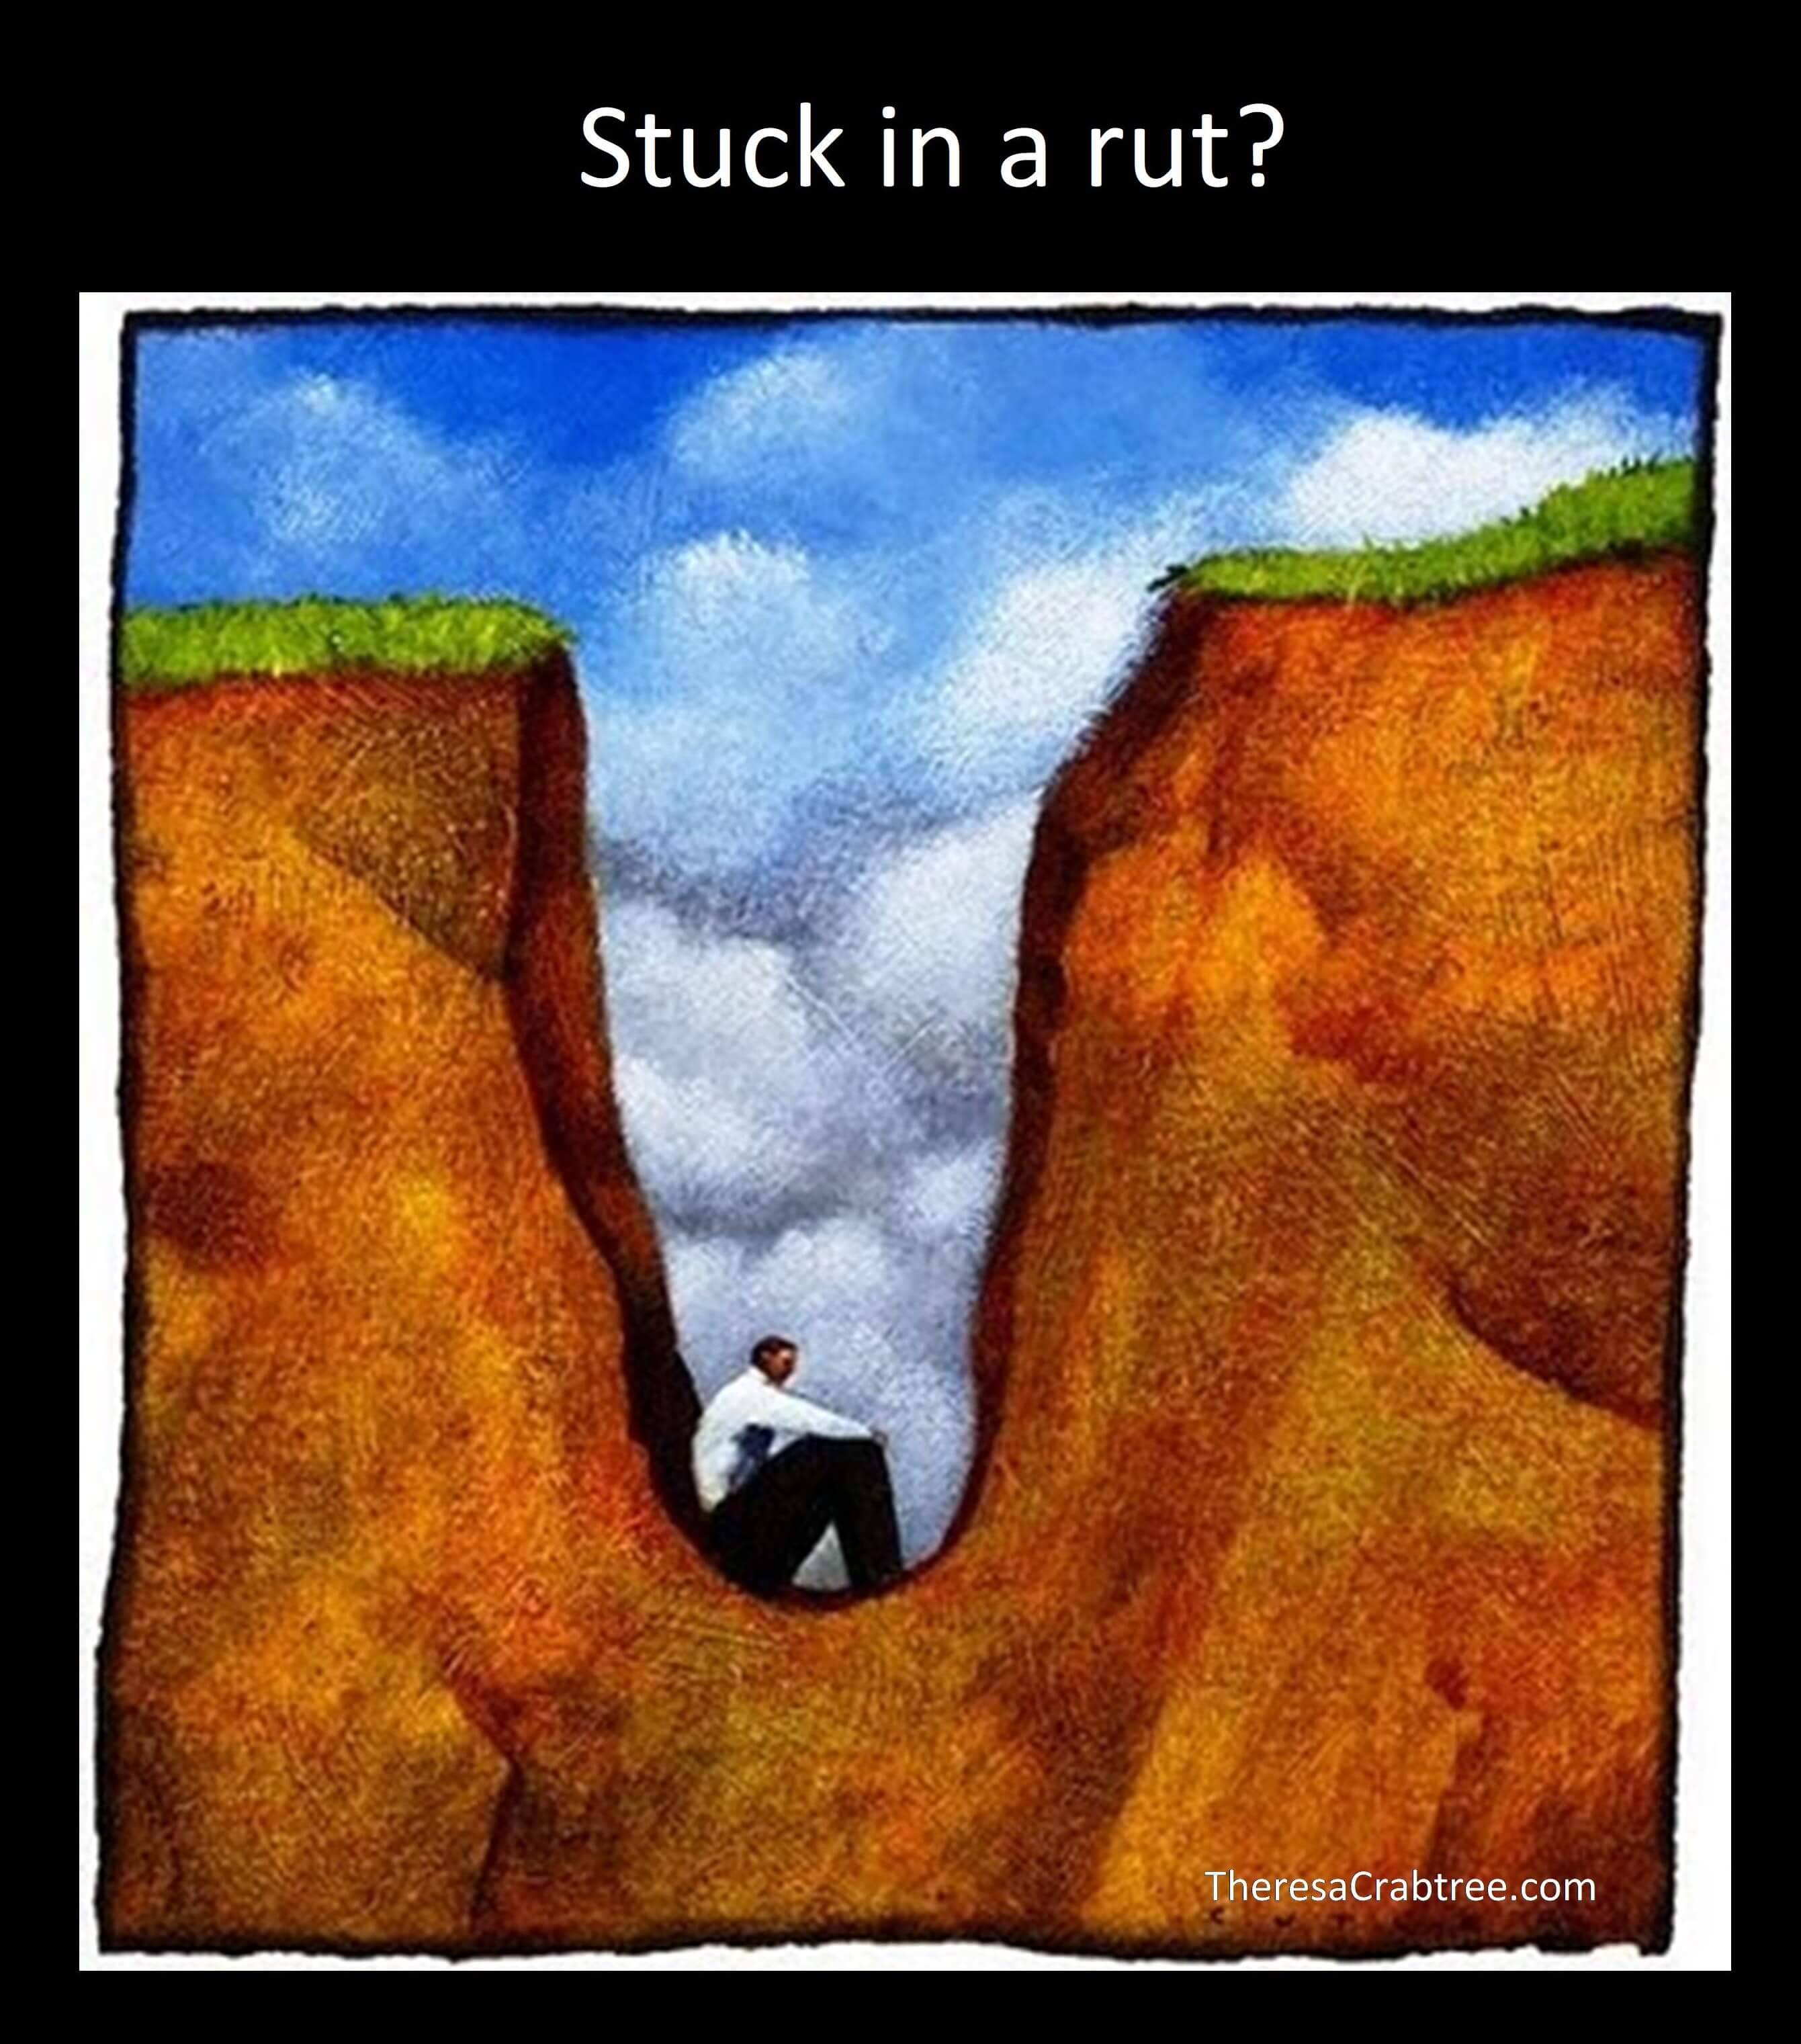 Stuck in a Rut?